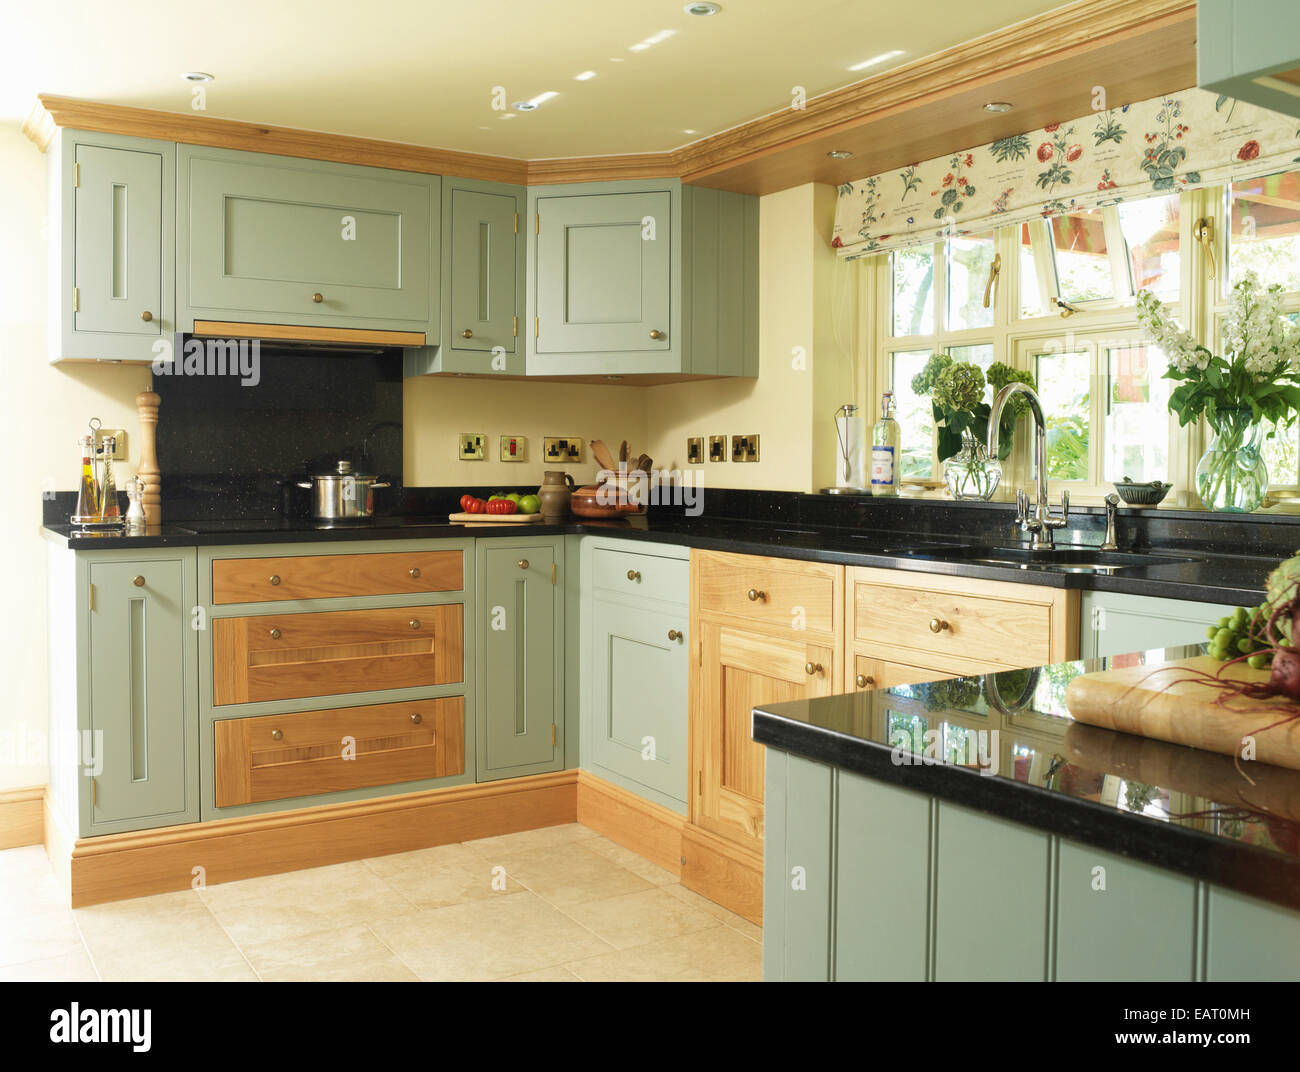 Country Style Kitchen With Green Fitted Units Stock Photo Royalty Free Image 75515457 Alamy